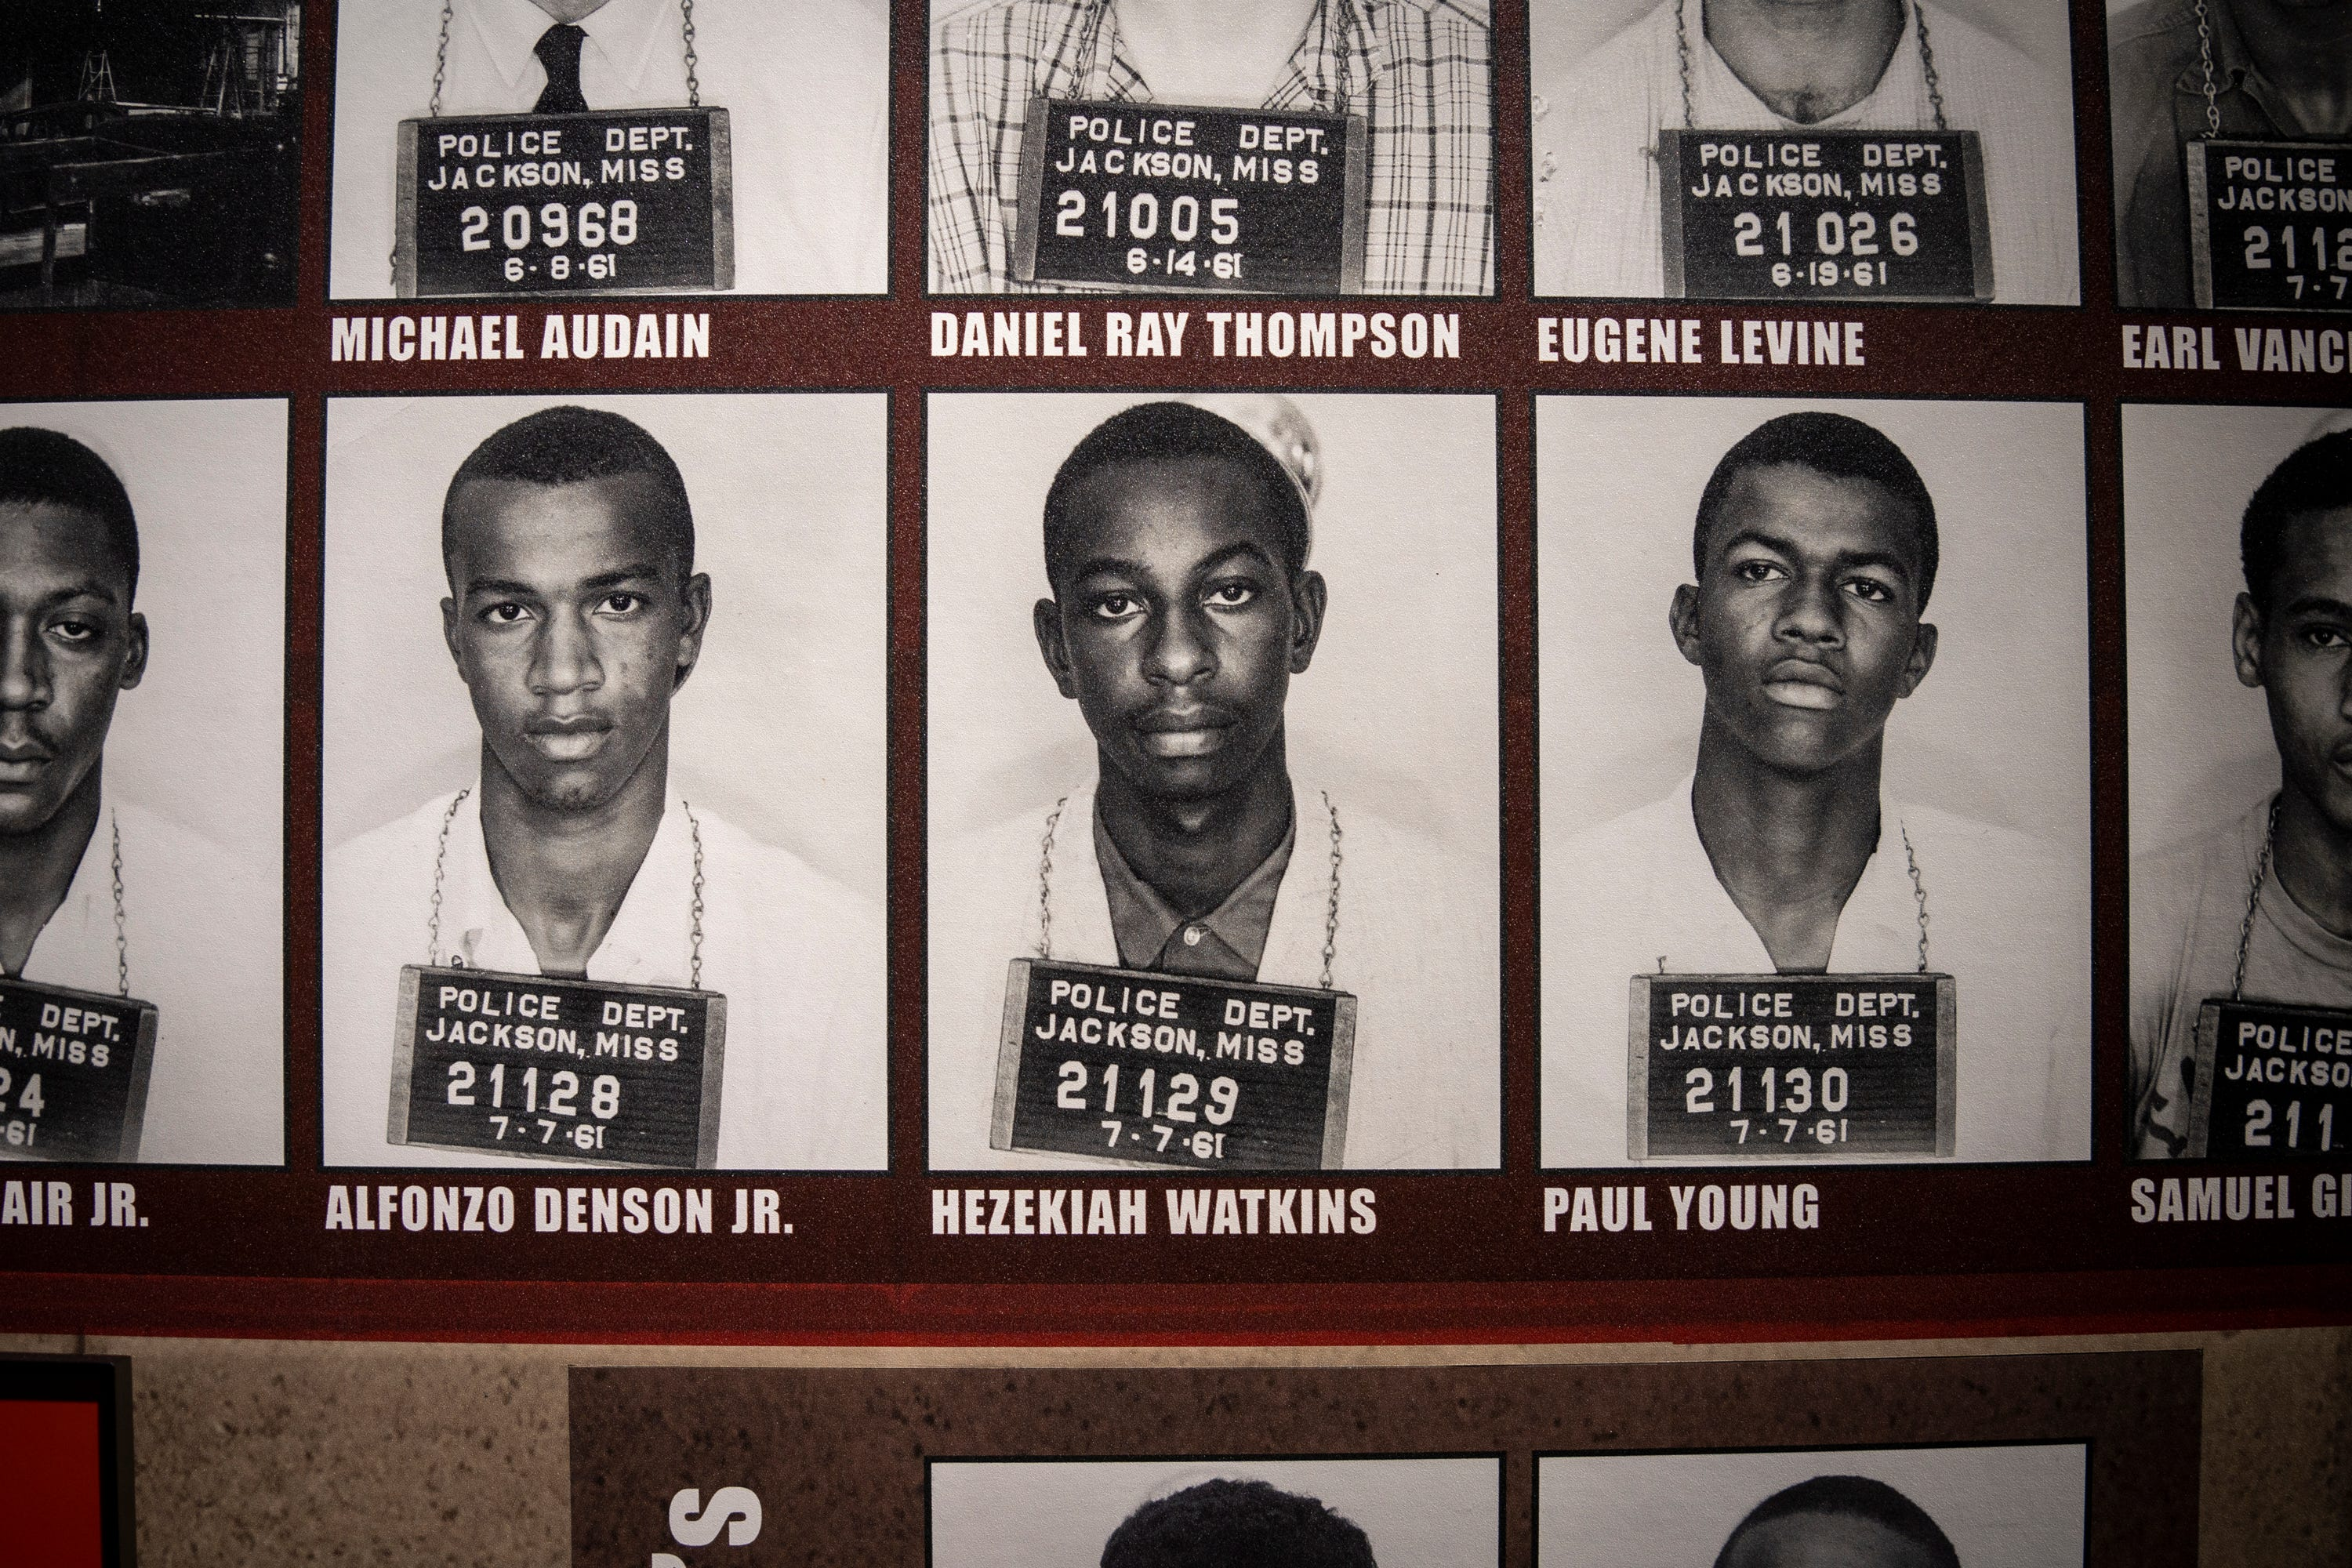 Jul 27, 2021; Jackson, Miss, USA; July 27, 2021; Jackson, Ms.; Hezekiah Watkins' mug shot is on display among those of hundreds of other civil rights activists in the Mississippi Civil Rights Museum. Watkins was arrested at the Greyhound Station in Jackson in 1961 at 13 years old, when he and a friend visited in the hopes of seeing The Freedom Riders. Since then, he has worked as a civil rights activist and has been arrested more than 100 times and seriously injured several times in civil rights efforts. Mandatory Credit: Jasper Colt-USA TODAY ORG XMIT: USAT-458441 [Via MerlinFTP Drop]